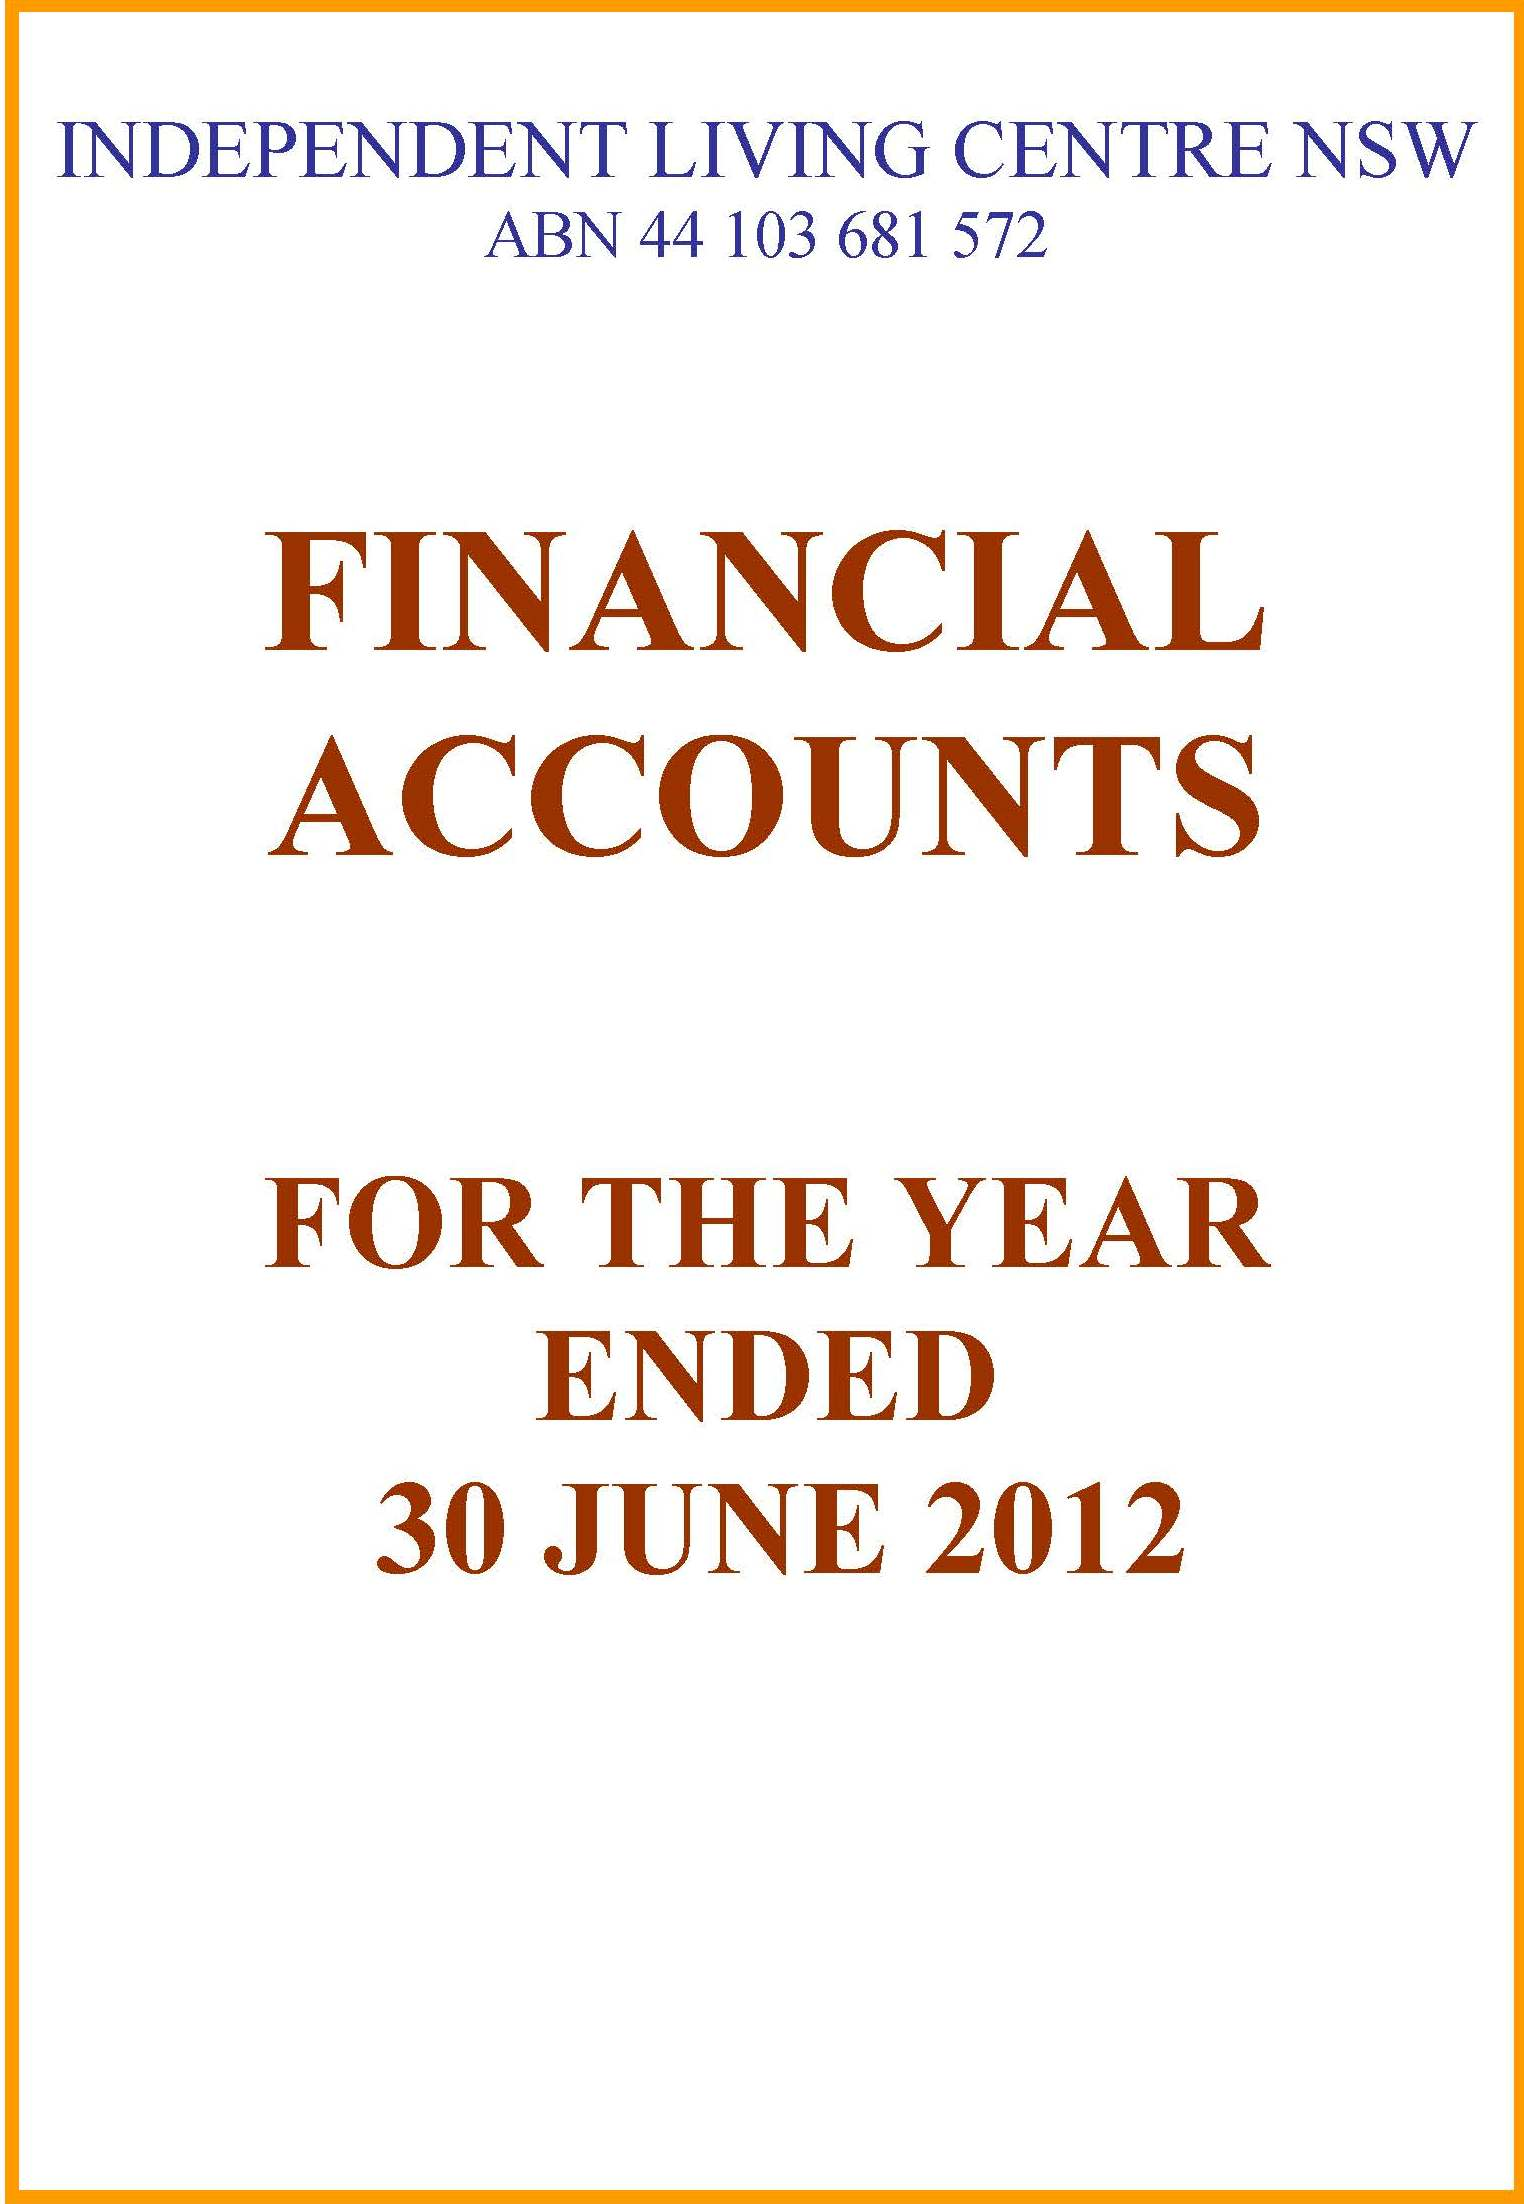 2011-2012 ILC Financial Report